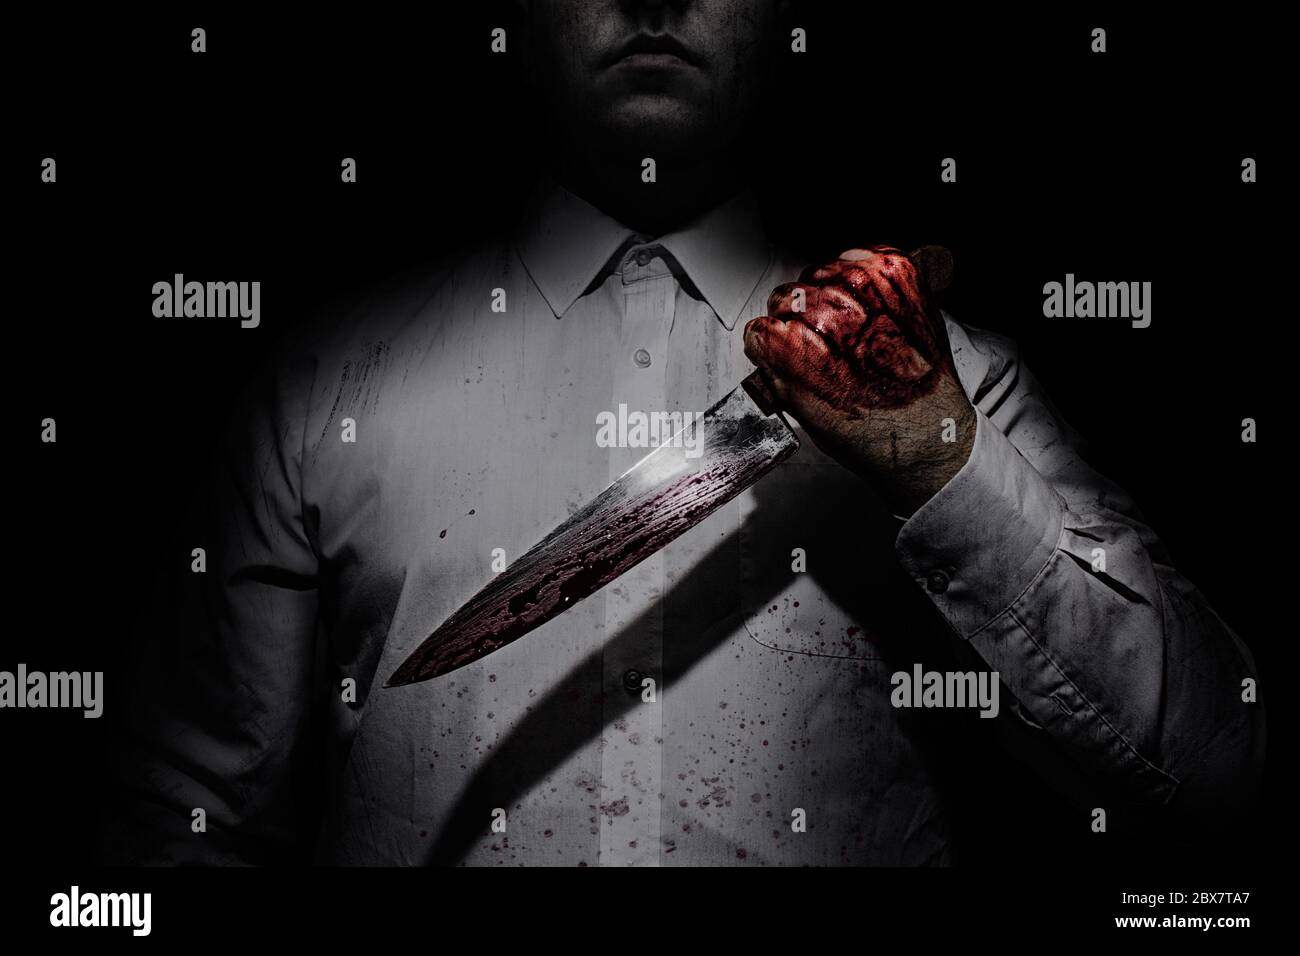 Page 2 Hitman High Resolution Stock Photography And Images Alamy